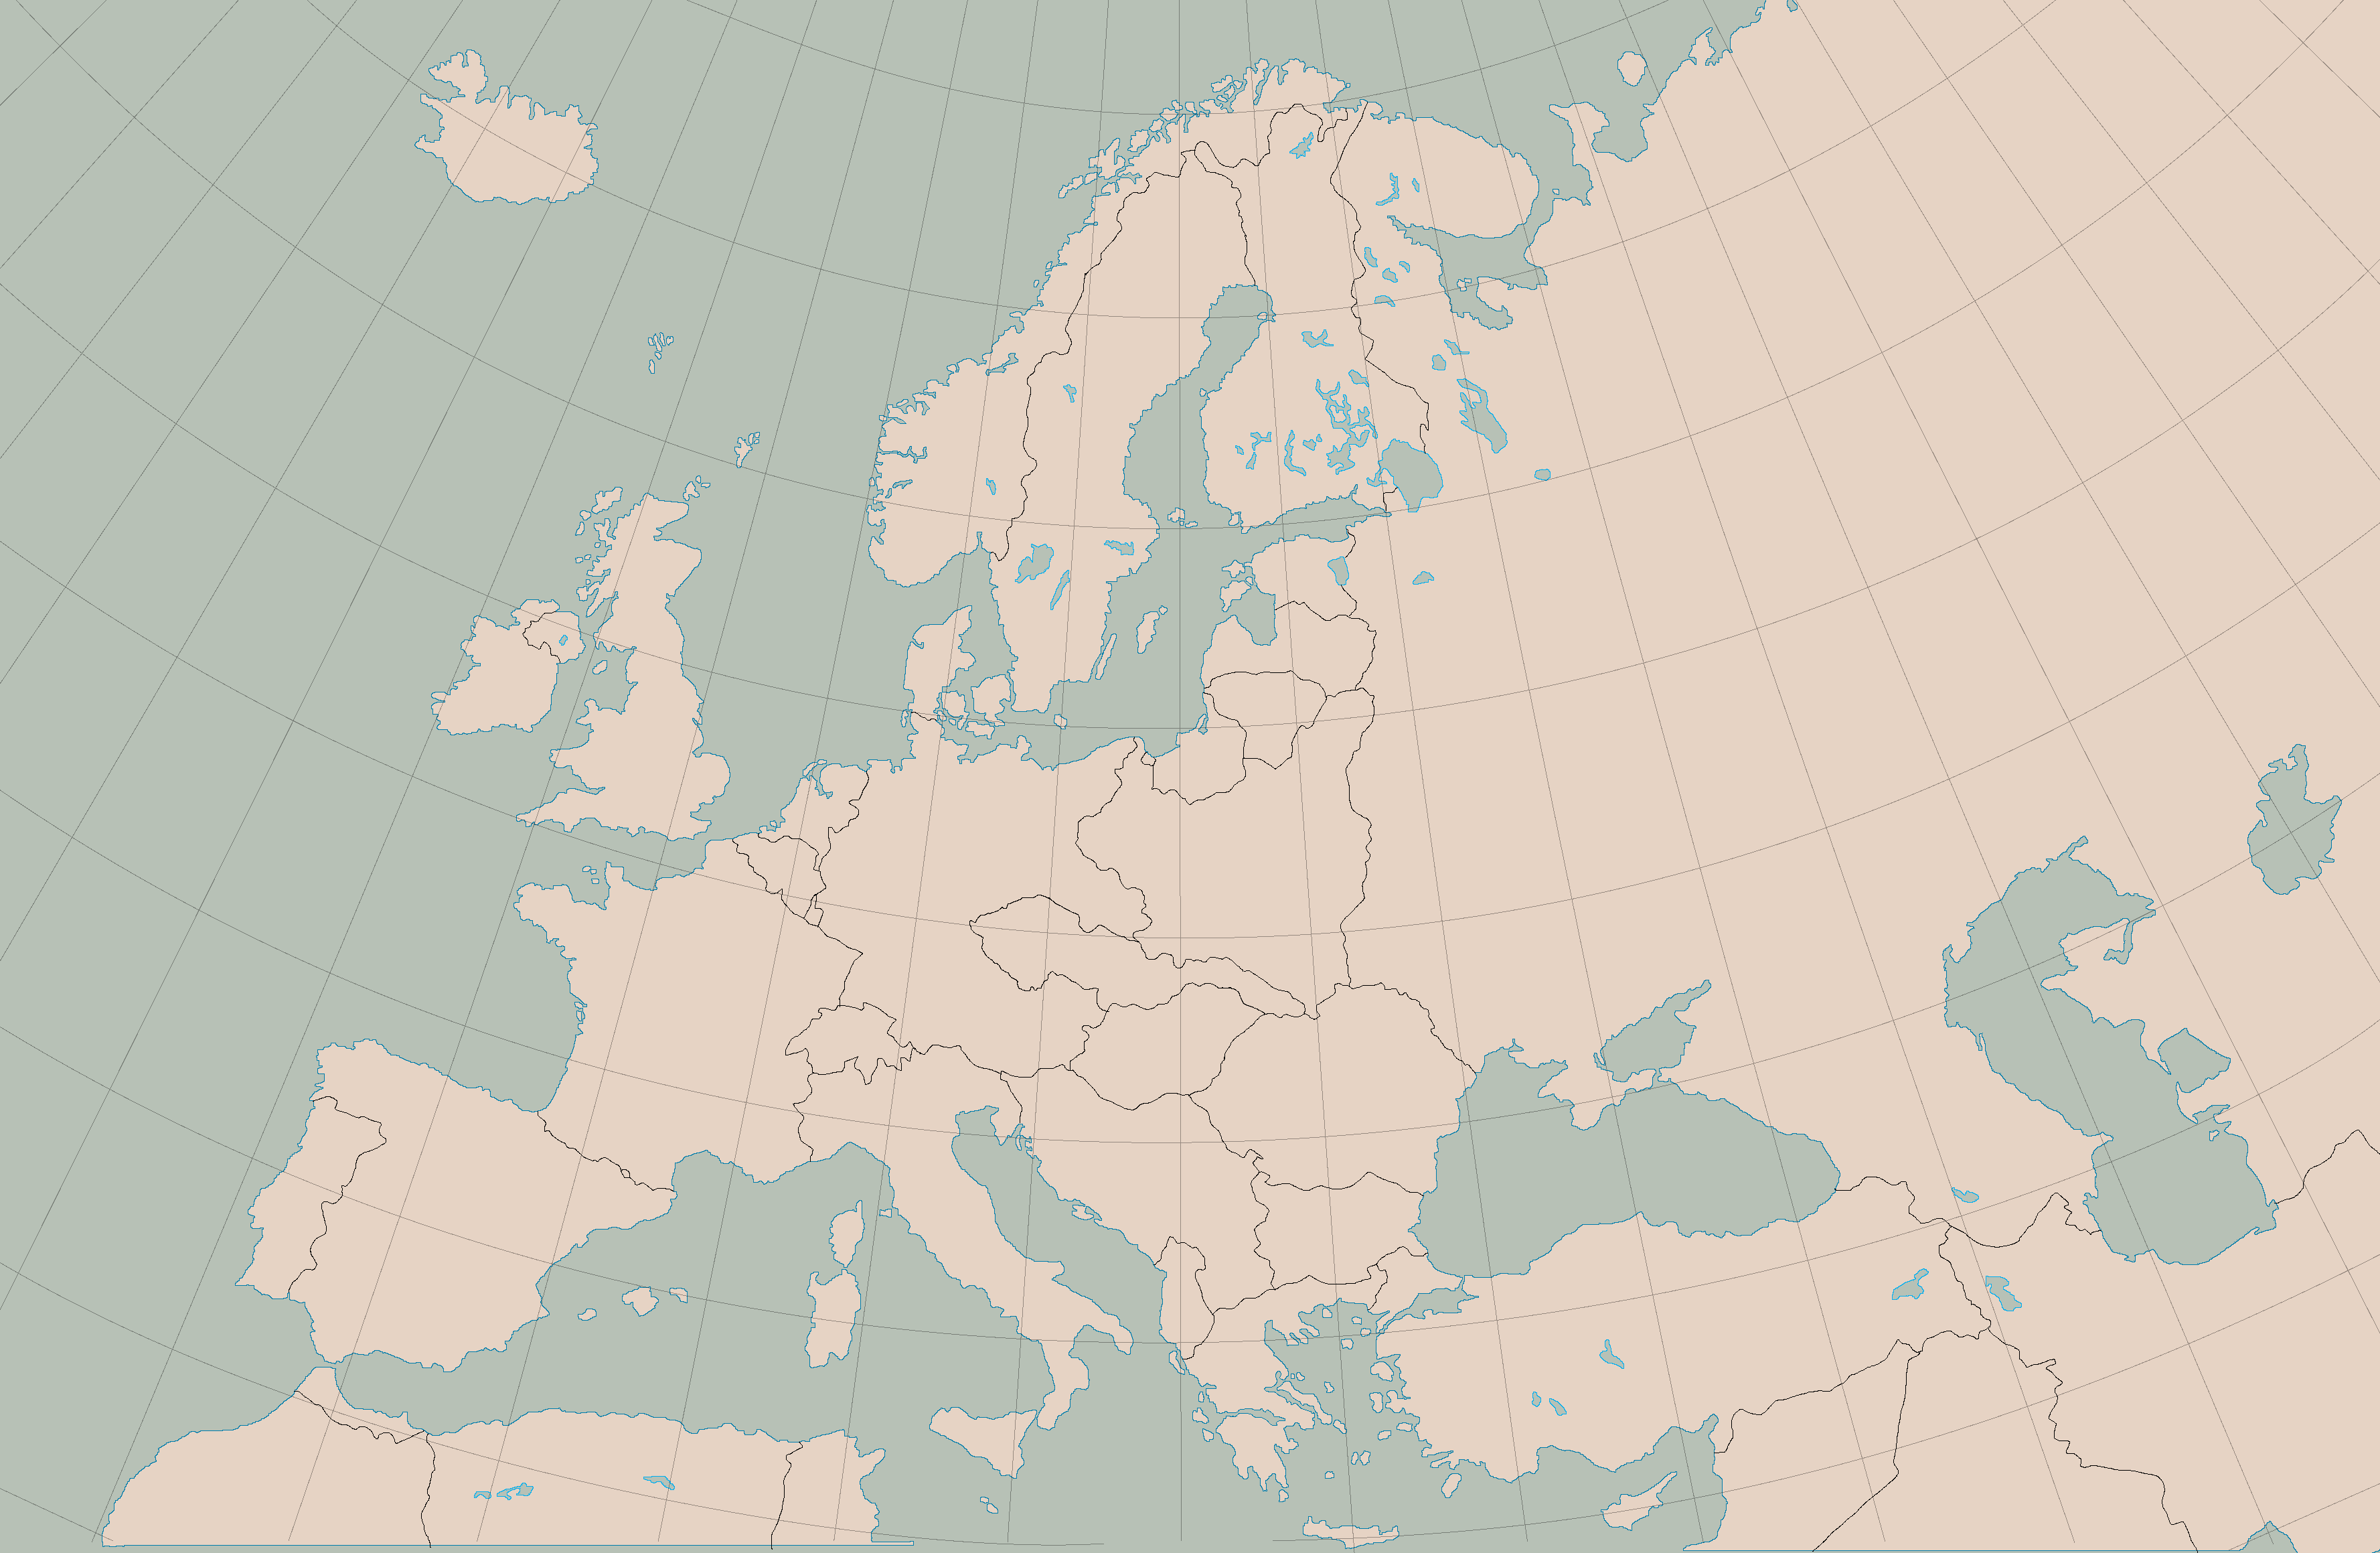 ... Blank Map Of Europe, 1938 Borders And Graticule By Kuusinen